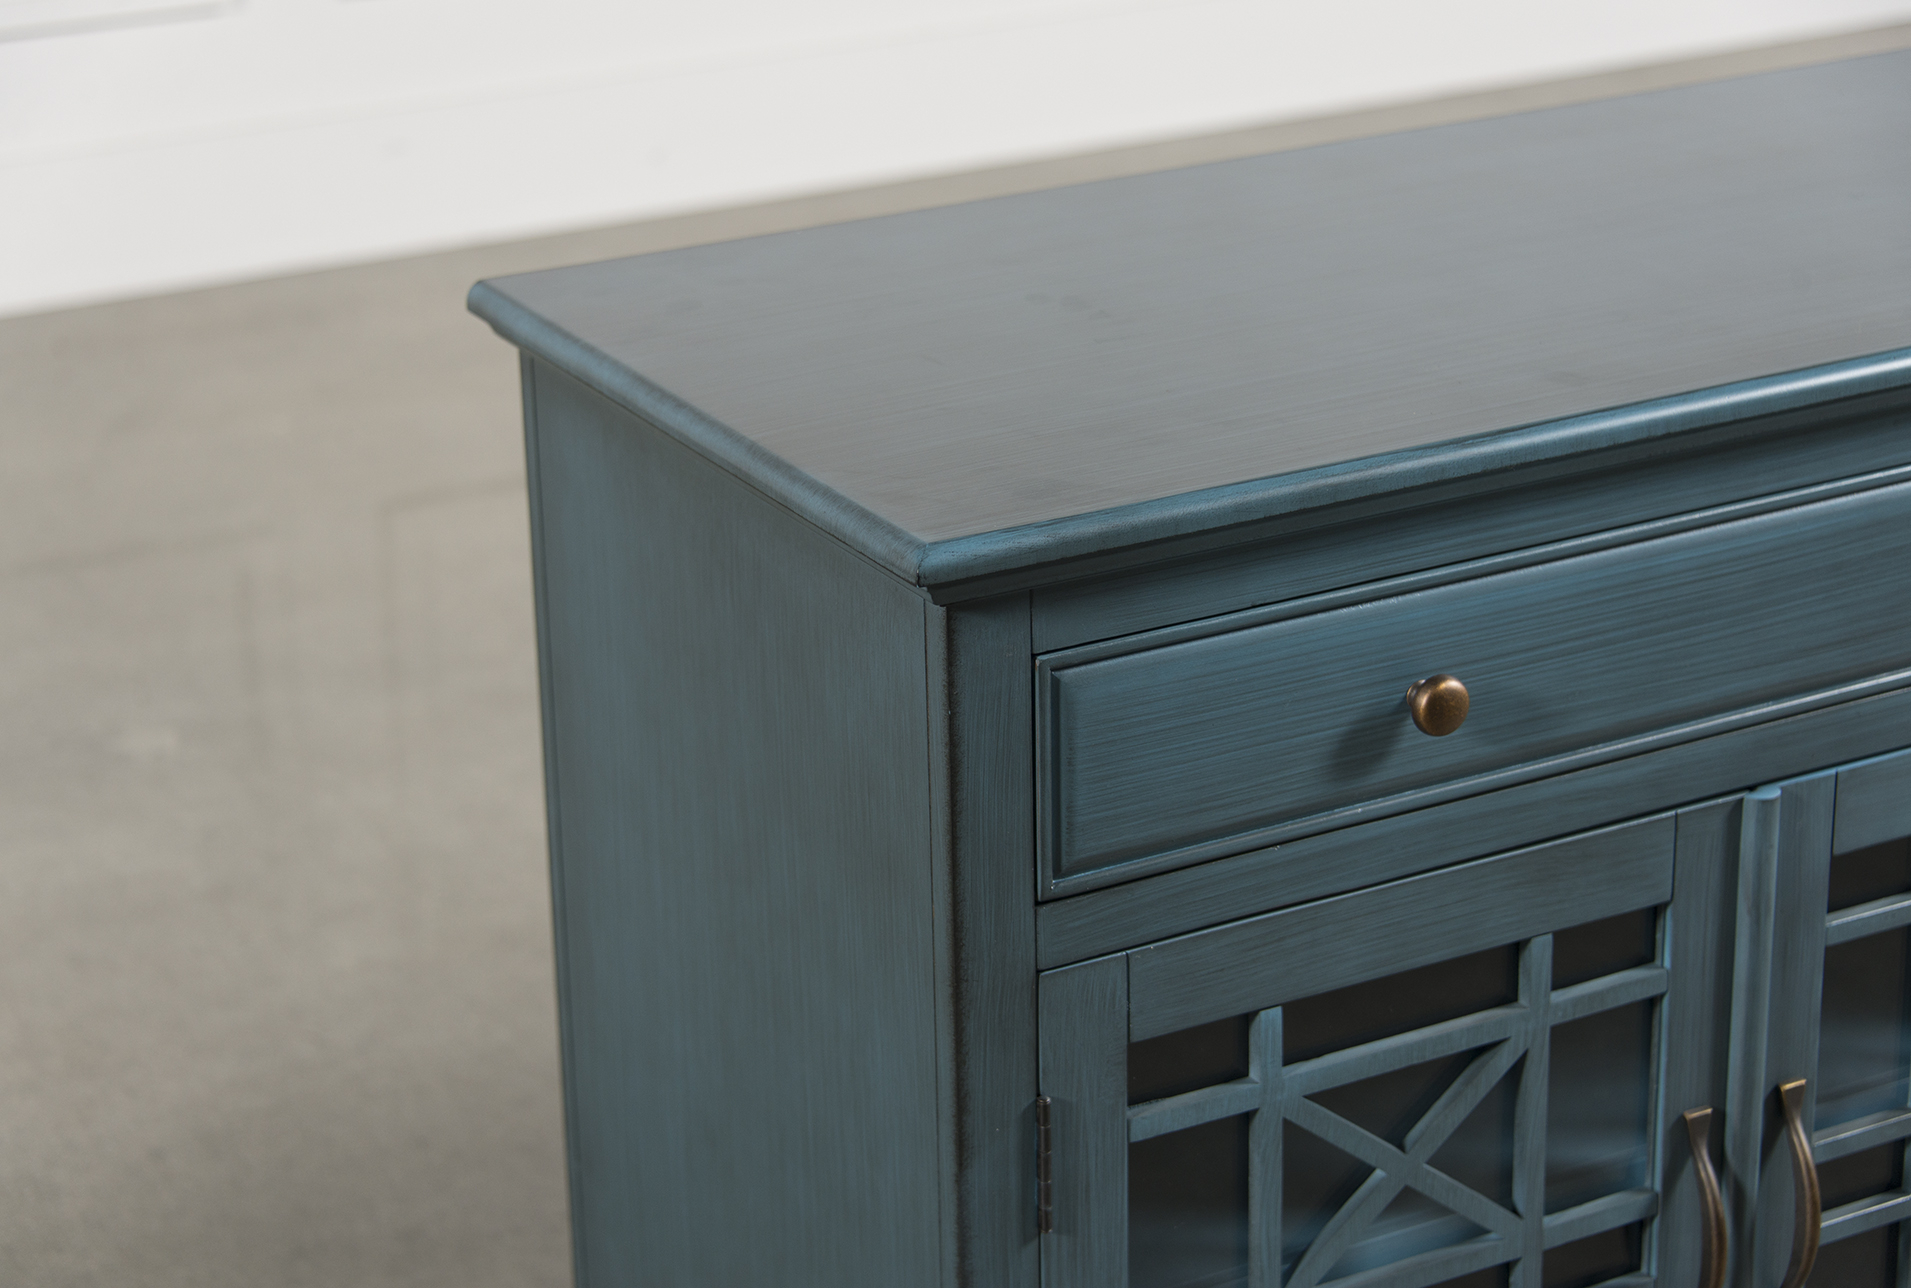 Annabelle Blue 70 Inch Tv Stand | Products | Pinterest inside Annabelle Blue 70 Inch Tv Stands (Image 4 of 30)